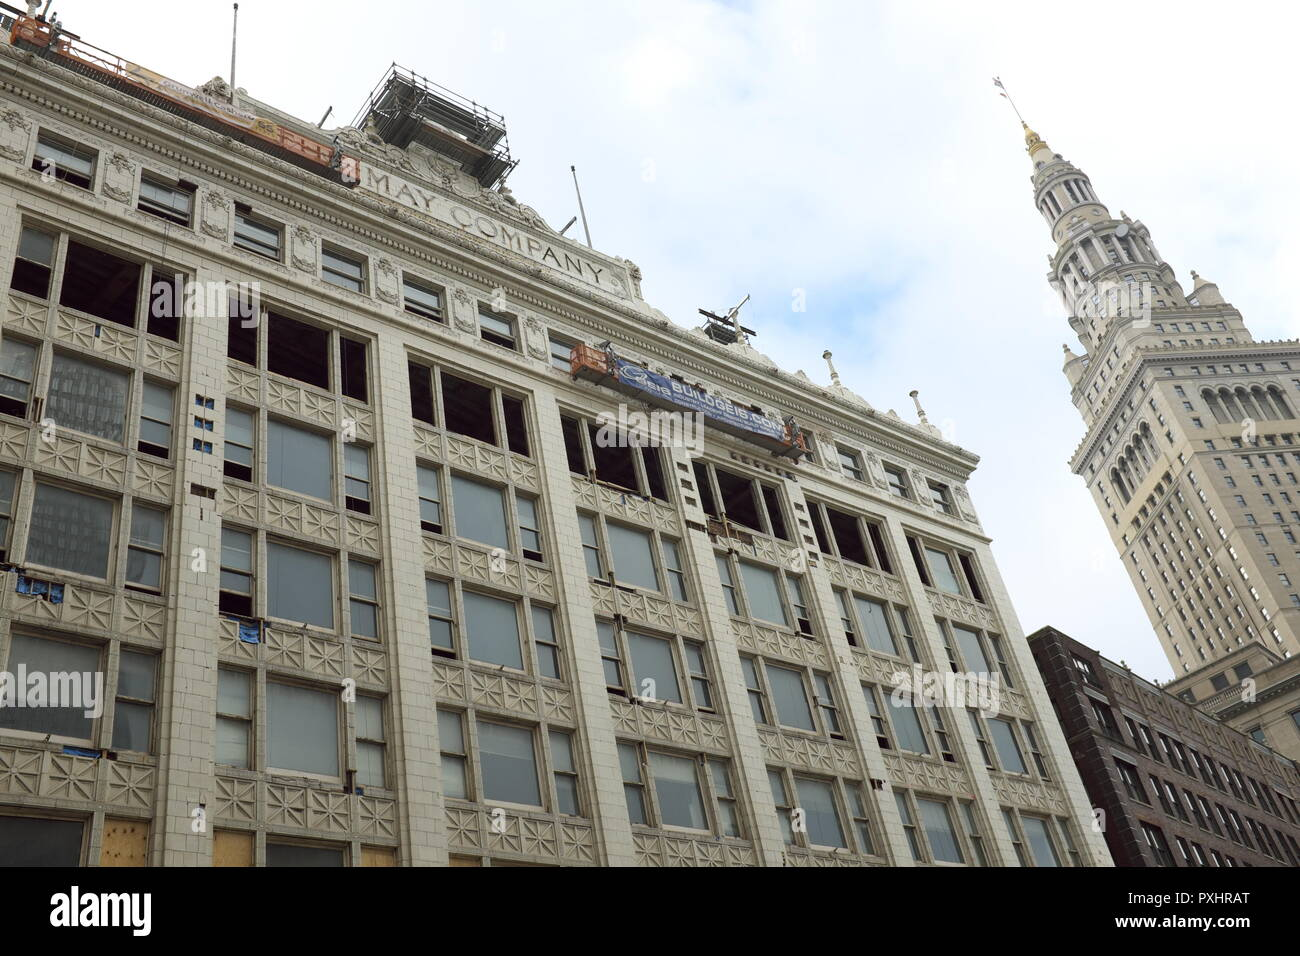 The May Company building, an historic department store in downtown Cleveland, Ohio, USA is being converted into a mixed-use property. - Stock Image